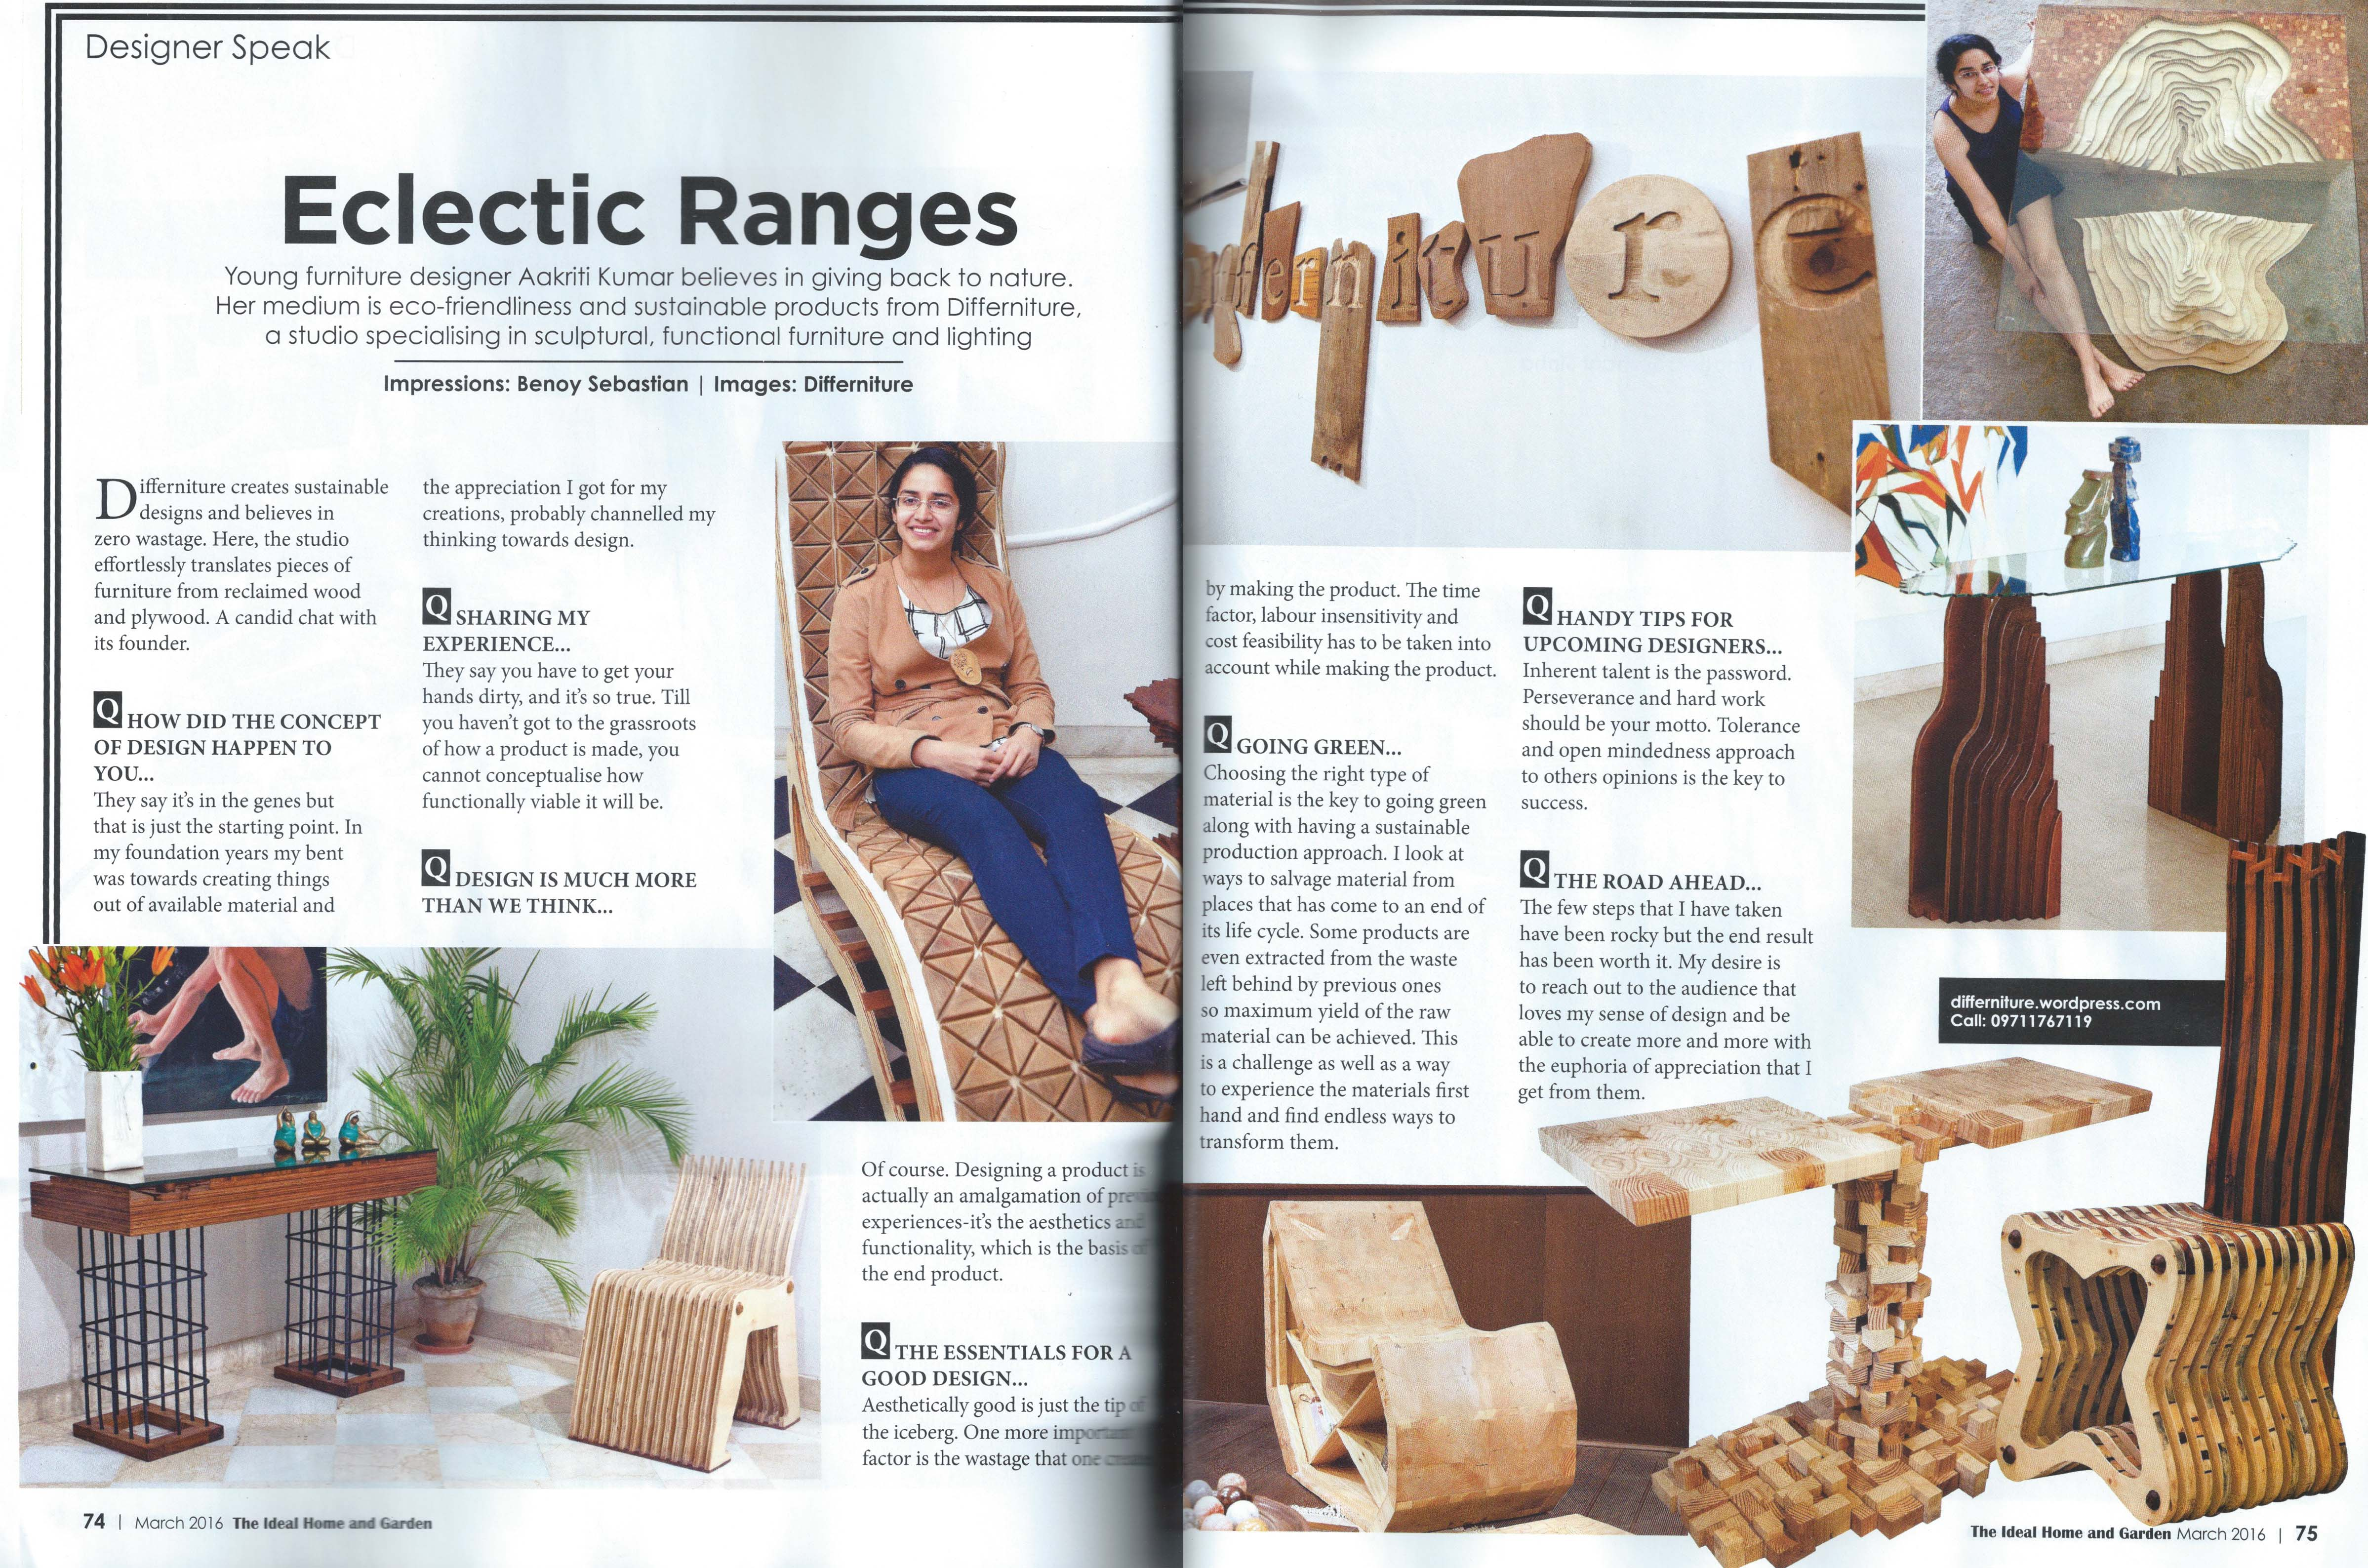 Ideal home and garden March 2016 1.jpg